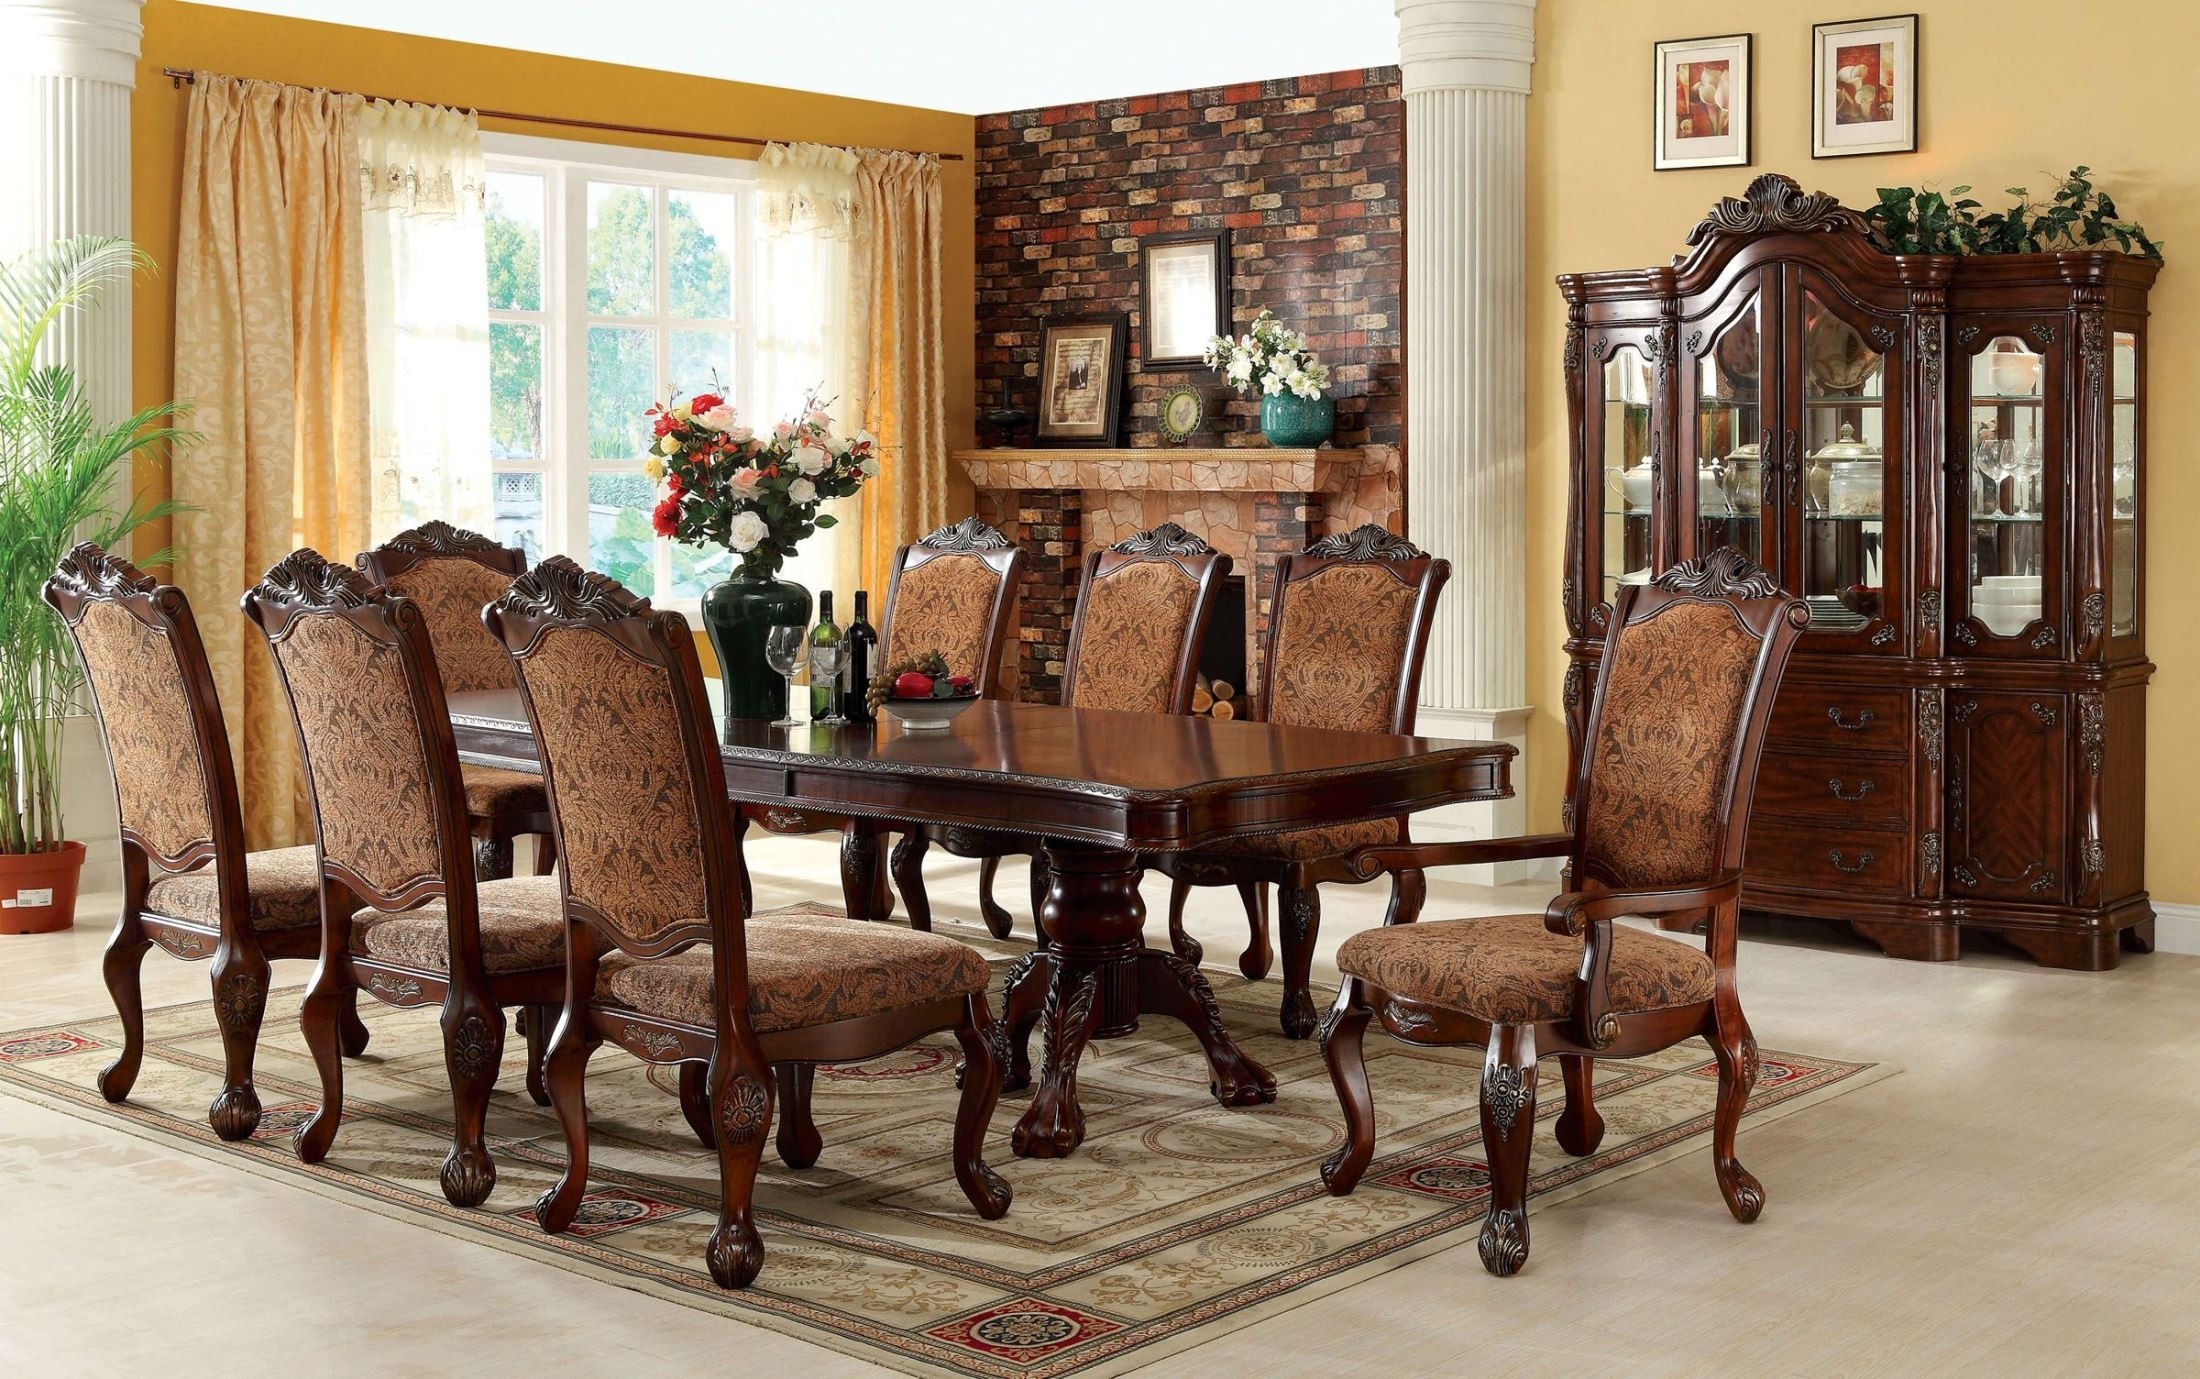 Cromwell antique cherry formal dining room set cm3103t for Elegant dining room furniture